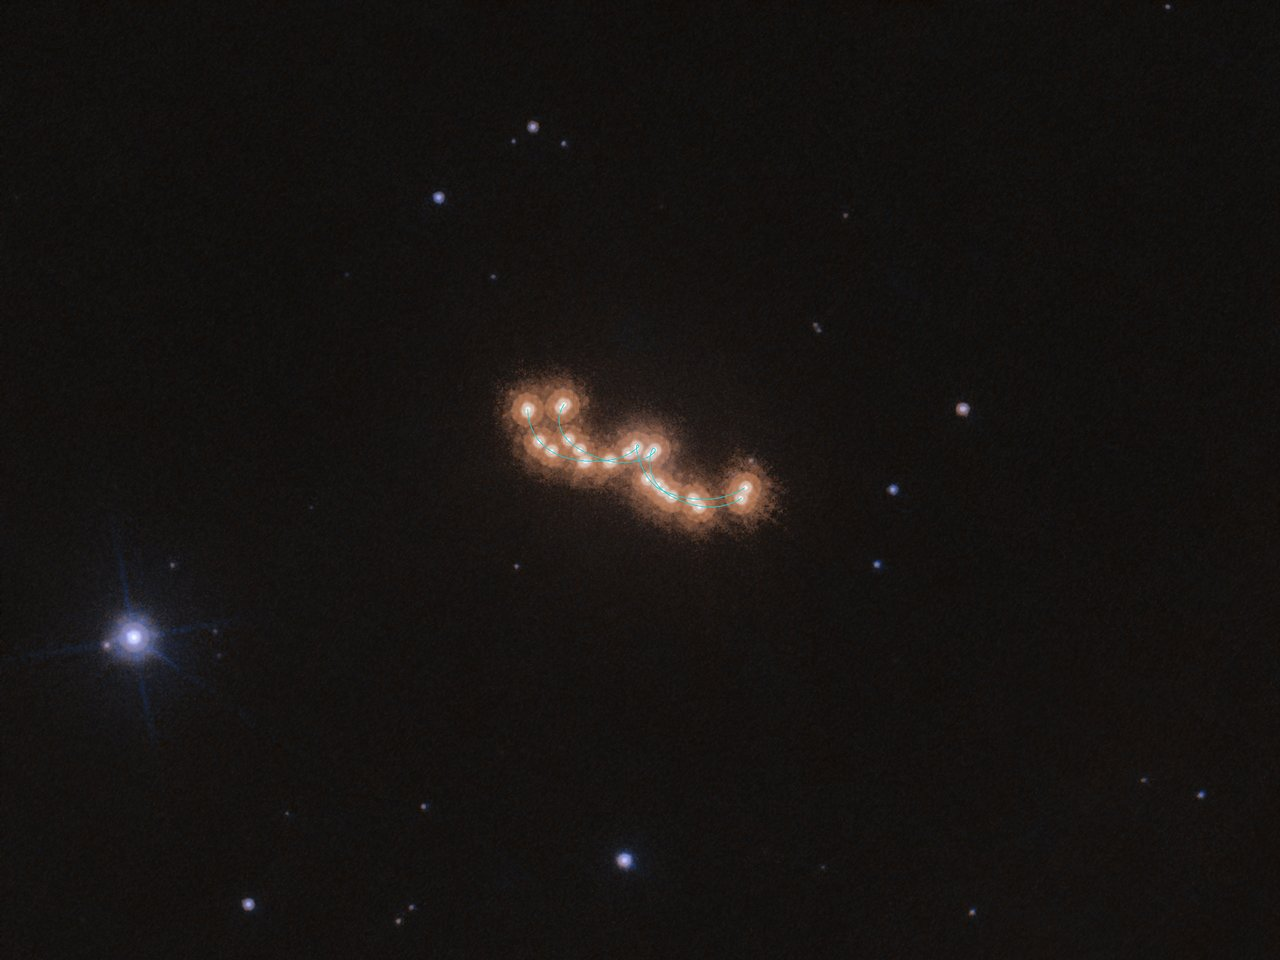 This seemingly unspectacular series of dots with varying distances between them actually shows the slow waltz of two brown dwarfs. The image is a stack of 12 images made over the course of three years with the NASA/ESA Hubble Space Telescope. Using high-precision astrometry, an Italian-led team of astronomers tracked the two components of the system as they moved both across the sky and around each other. The observed system, Luhman 16AB, is only about six light-years away and is the third closest stellar system to Earth — after the triple star system Alpha Centauri and Barnard's Star. Despite its proximity, Luhman 16AB was only discovered in 2013 by the astronomer Kevin Luhman. The two brown dwarfs that make up the system, Luhman 16A and Luhman 16B, orbit each other at a distance of only three times the distance between the Earth and the Sun, and so these observations are a showcase for Hubble's precision and high resolution. The astronomers using Hubble to study Luhman 16AB were not only interested in the waltz of the two brown dwarfs, but were also searching for a third, invisible, dancing partner. Earlier observations with ESO's Very Large Telescope indicated the presence of an exoplanet in the system. The team wanted to verify this claim by analysing the movement of the brown dwarfs in great detail over a long period of time, but the Hubble data showed that the two dwarfs are indeed dancing alone, unperturbed by a massive planetary companion. Links:  INAF press release (Italian) Video on waltzing dwarfs